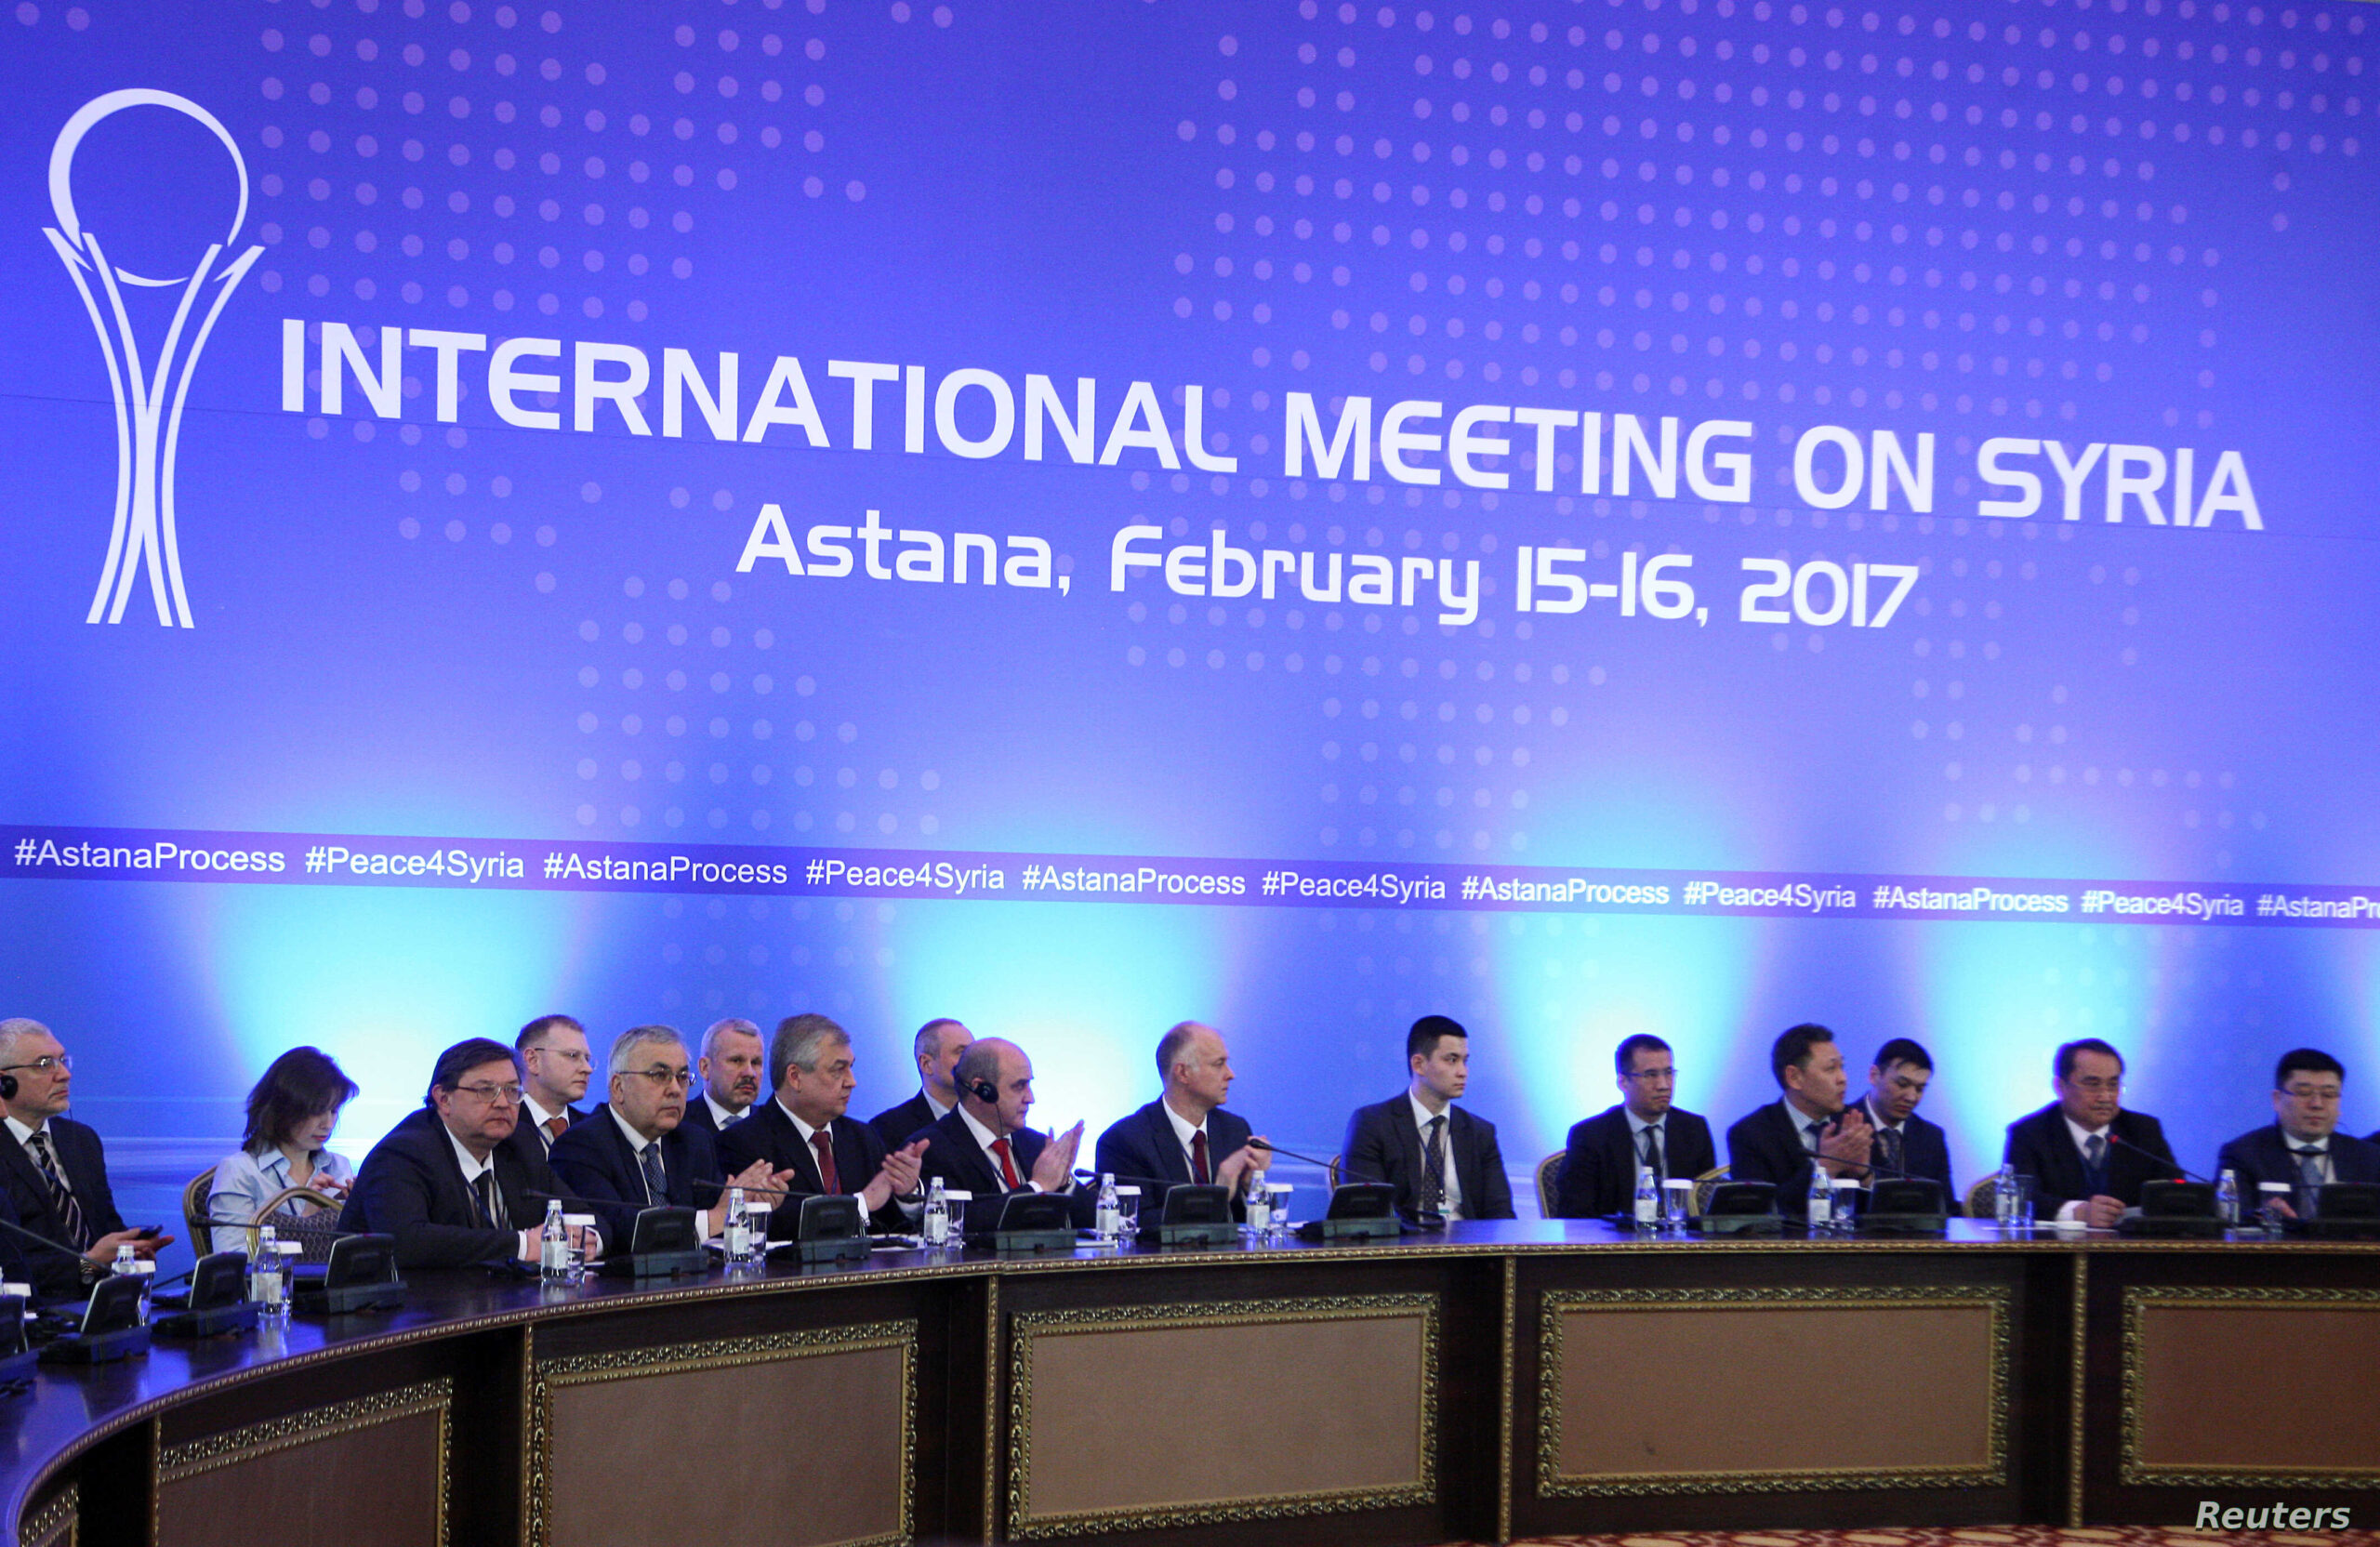 Share on Twitter Share via Email Print this page Middle East Astana Talks on Syria to Continue Despite Setbacks By Daniel Schearf February 18, 2017 07:26 PM Participants of Syria peace talks attend a meeting in Astana, Kazakhstan, Feb. 16, 2017. Participants of Syria peace talks attend a meeting in Astana, Kazakhstan, Feb. 16, 2017.